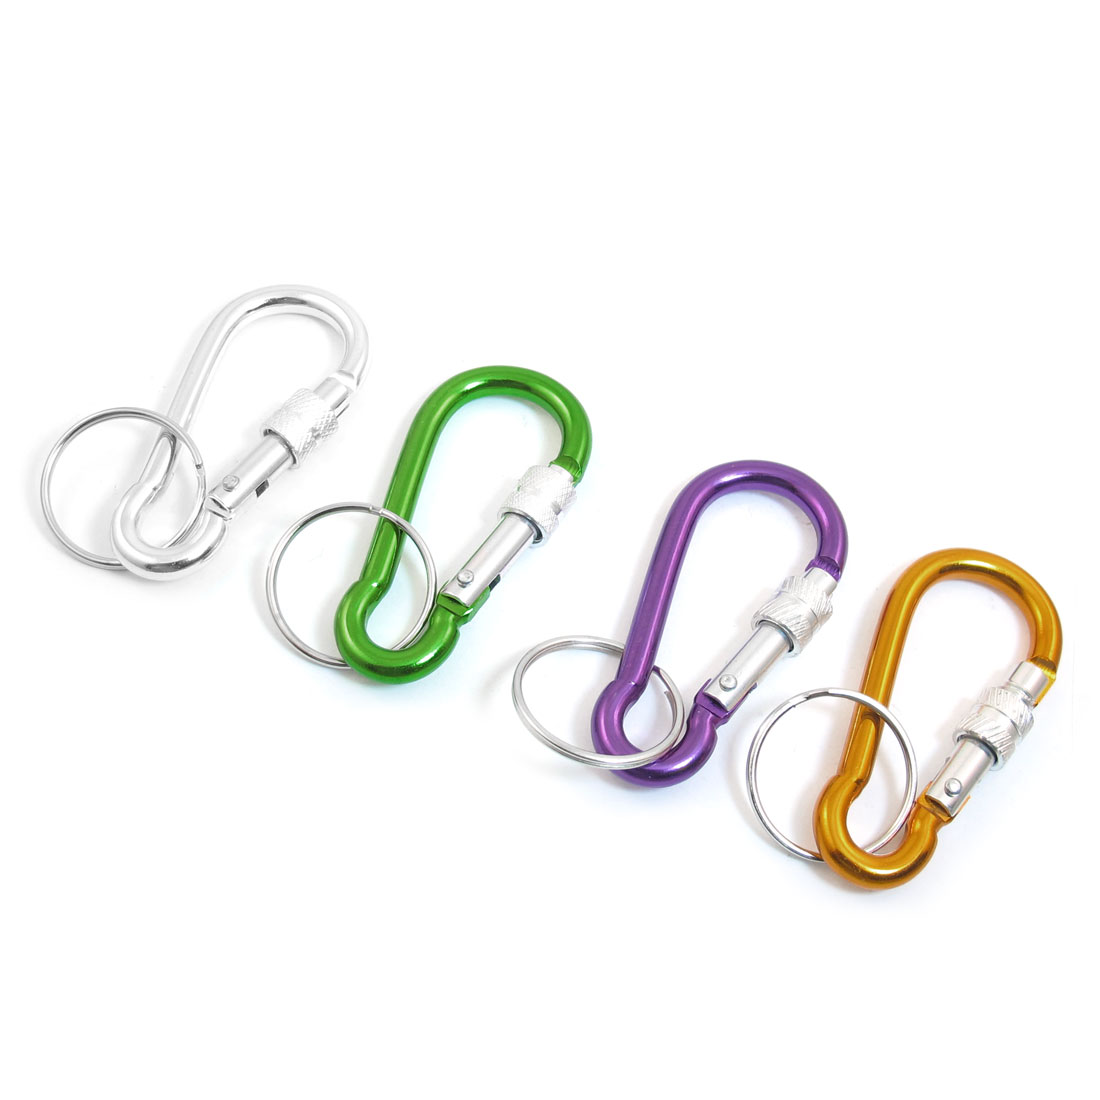 4PCS Assorted Colors Aluminum Alloy Spring Loaded Gate Locking Keyring Carabiner